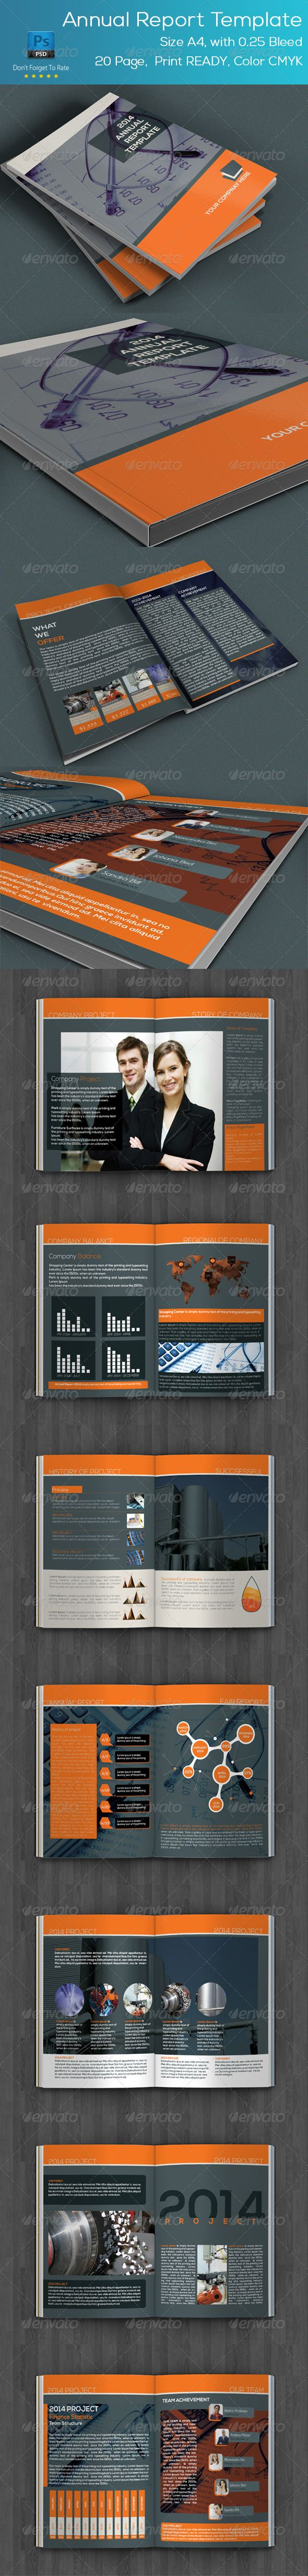 Annual Report Template Best 108 Print Templates